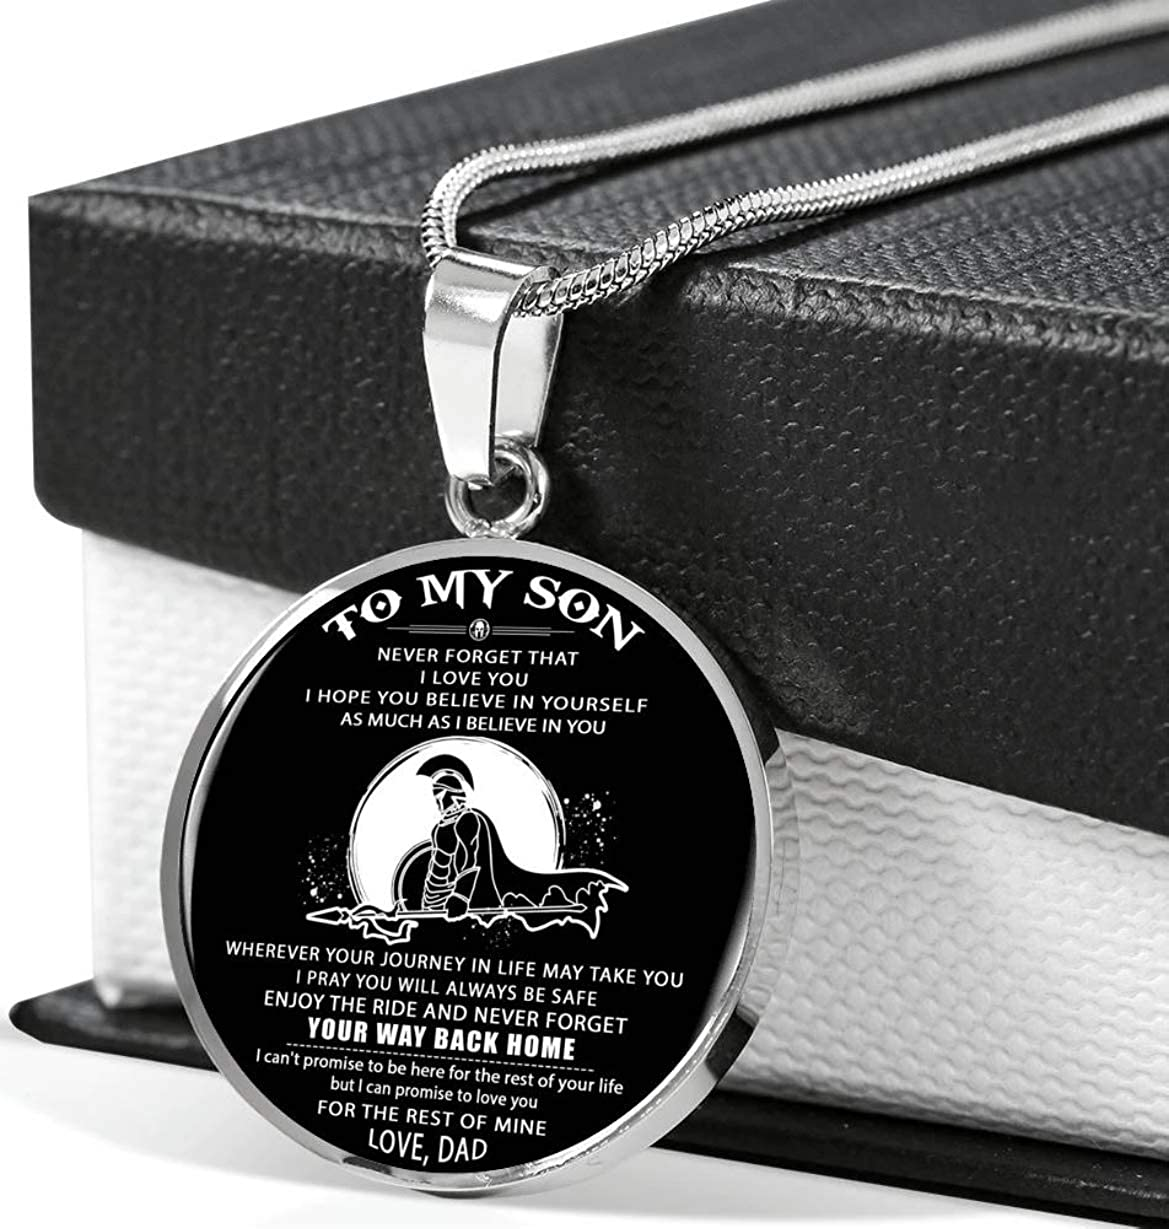 somegifts Spartan Necklace Dad to Son Wherever Your Journey on Life May take You i Pray You Will Alway be Safe Enjoy The Ride and Never Forget Your Way Back Home